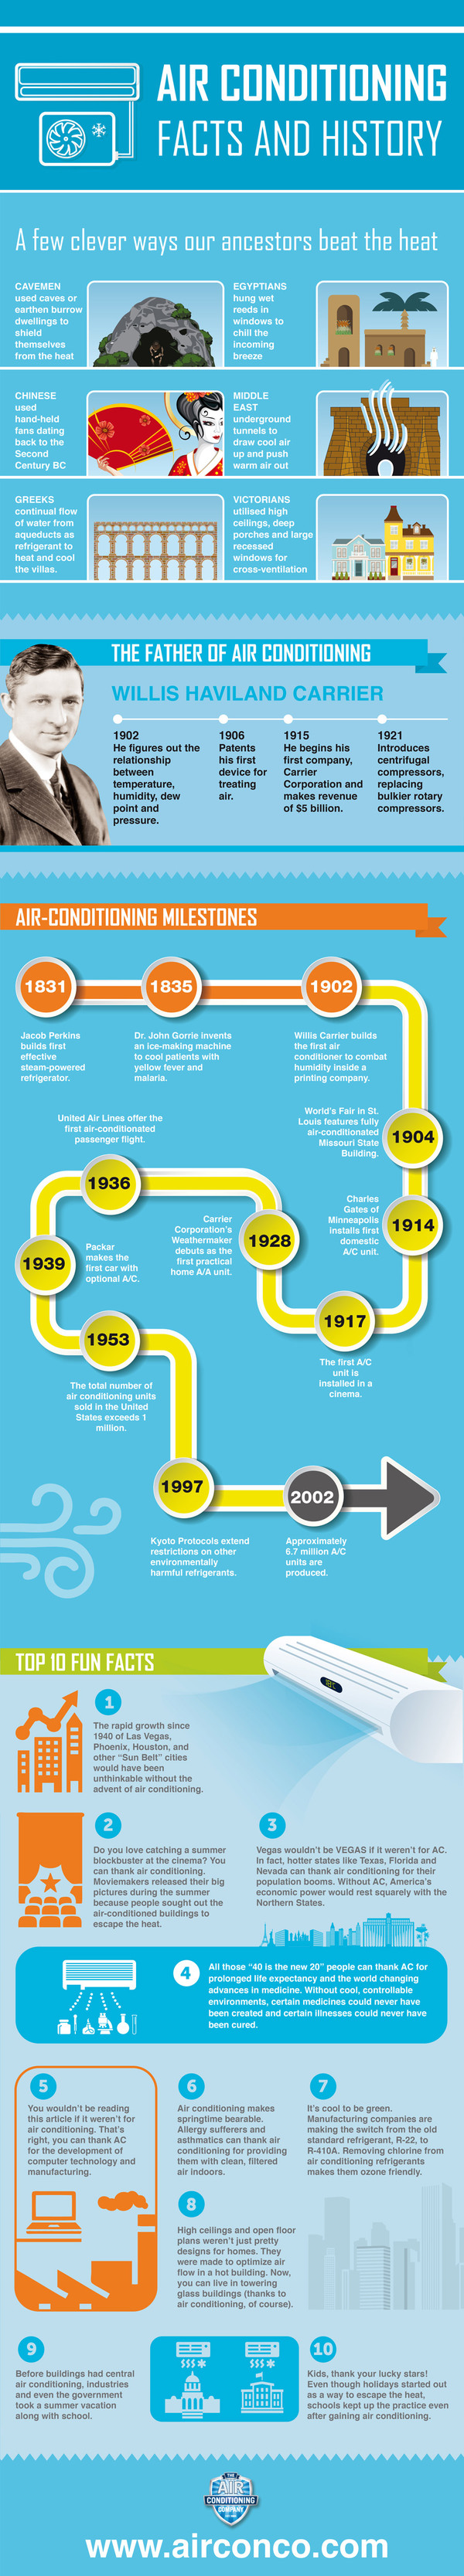 Air Conditioning Facts and History (Infographic) in 2020